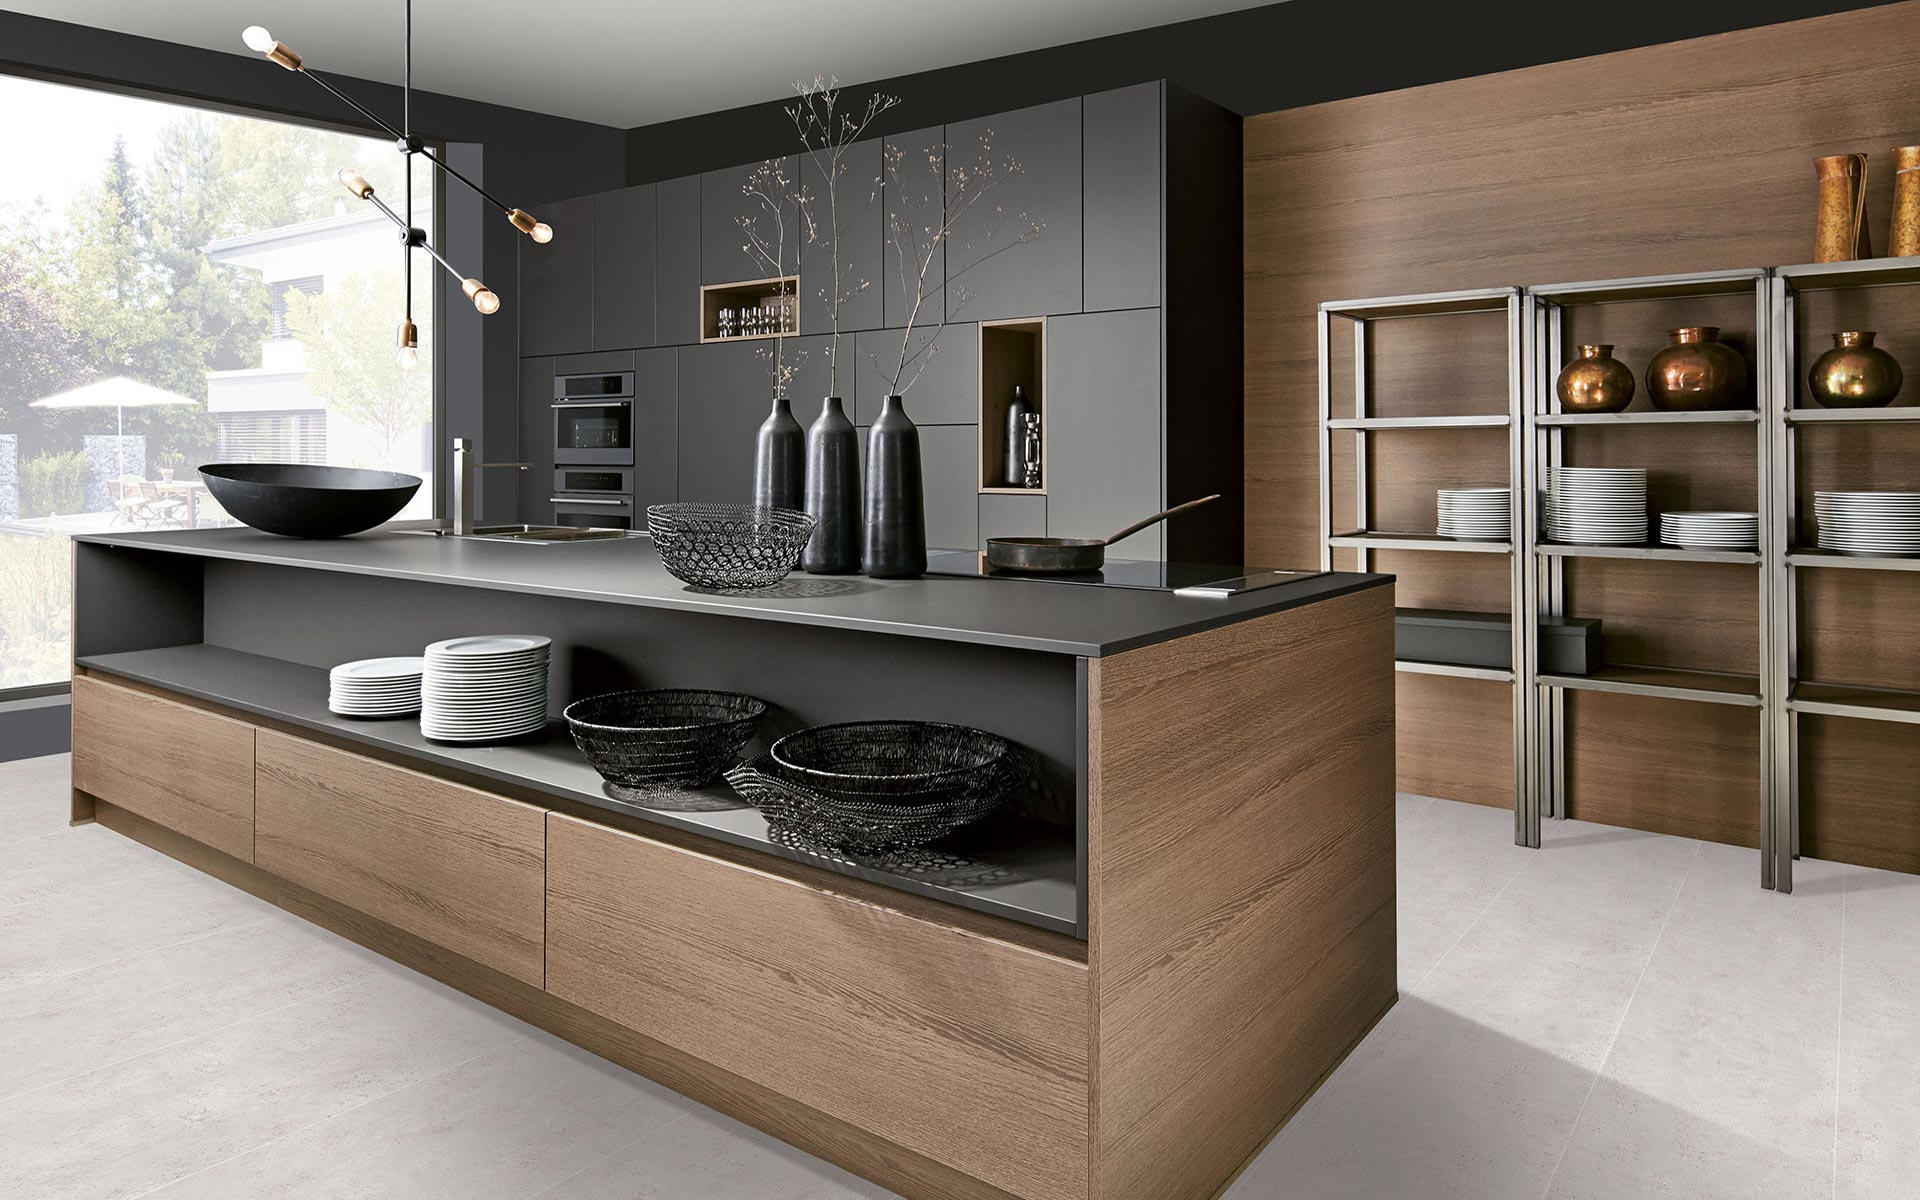 Toronto: Kitchens from Germany, Europe. Calm H Mittel • Extrem Graphit